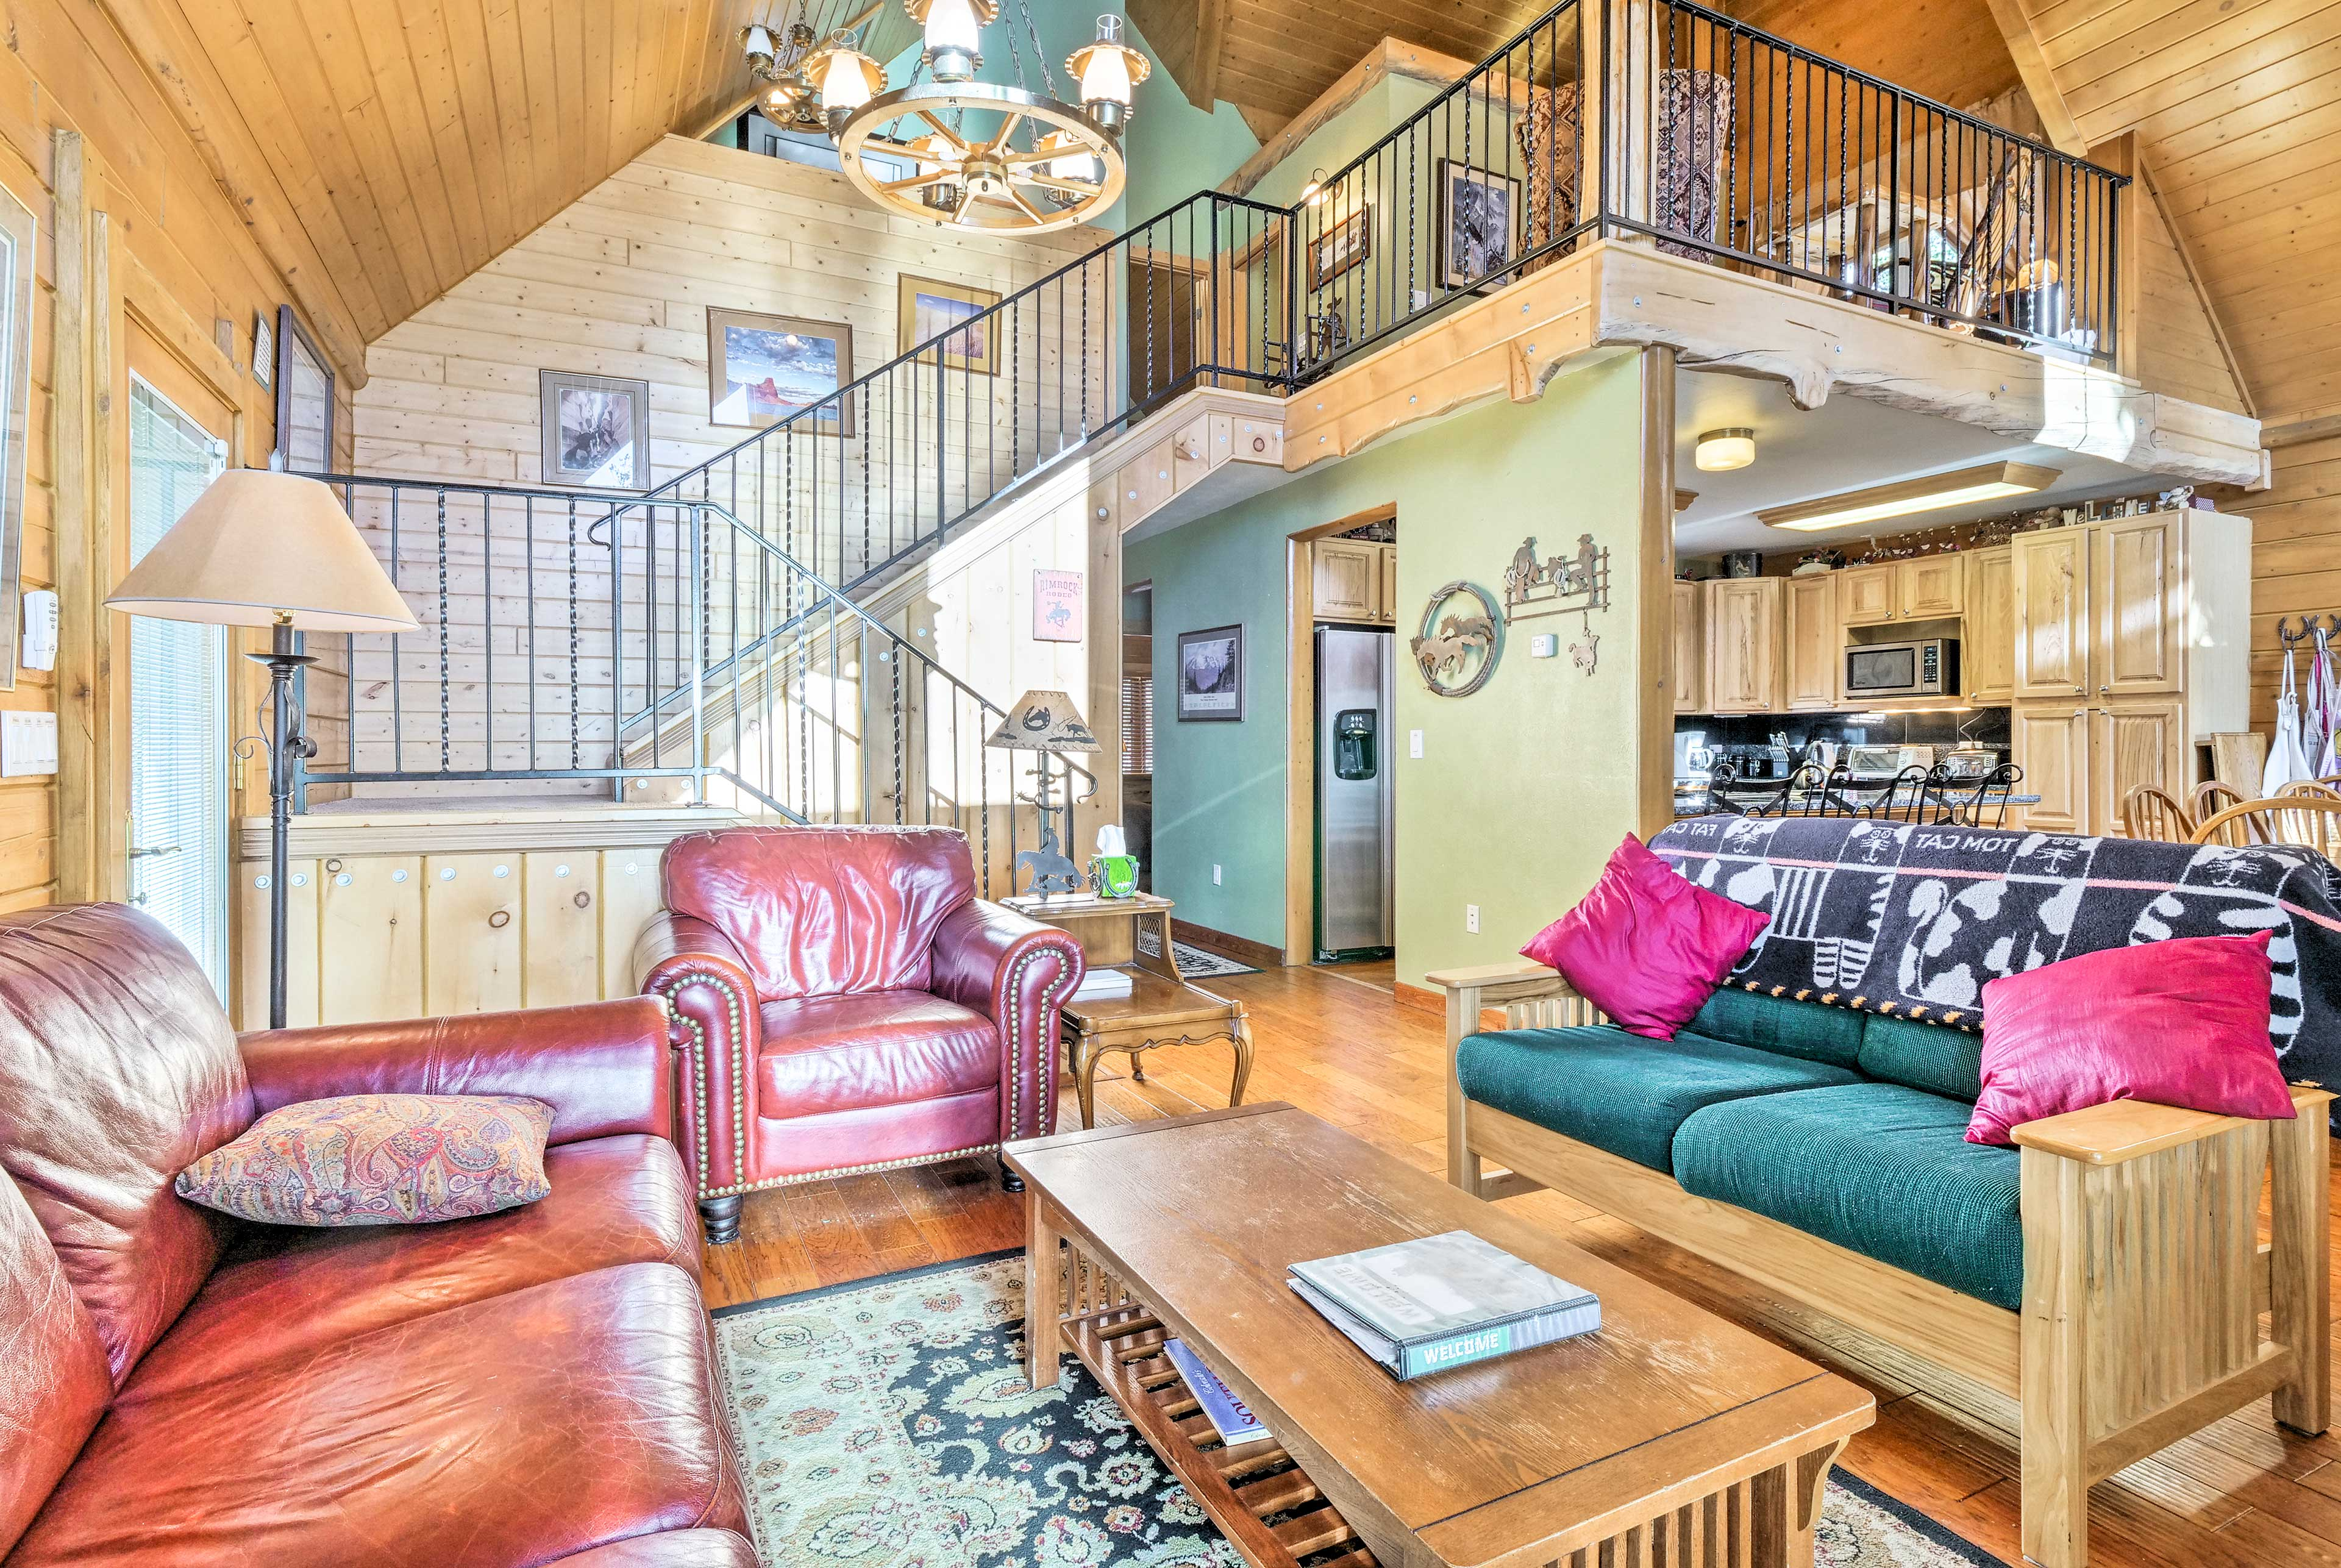 The interior boasts over 3,000 square feet of living space.